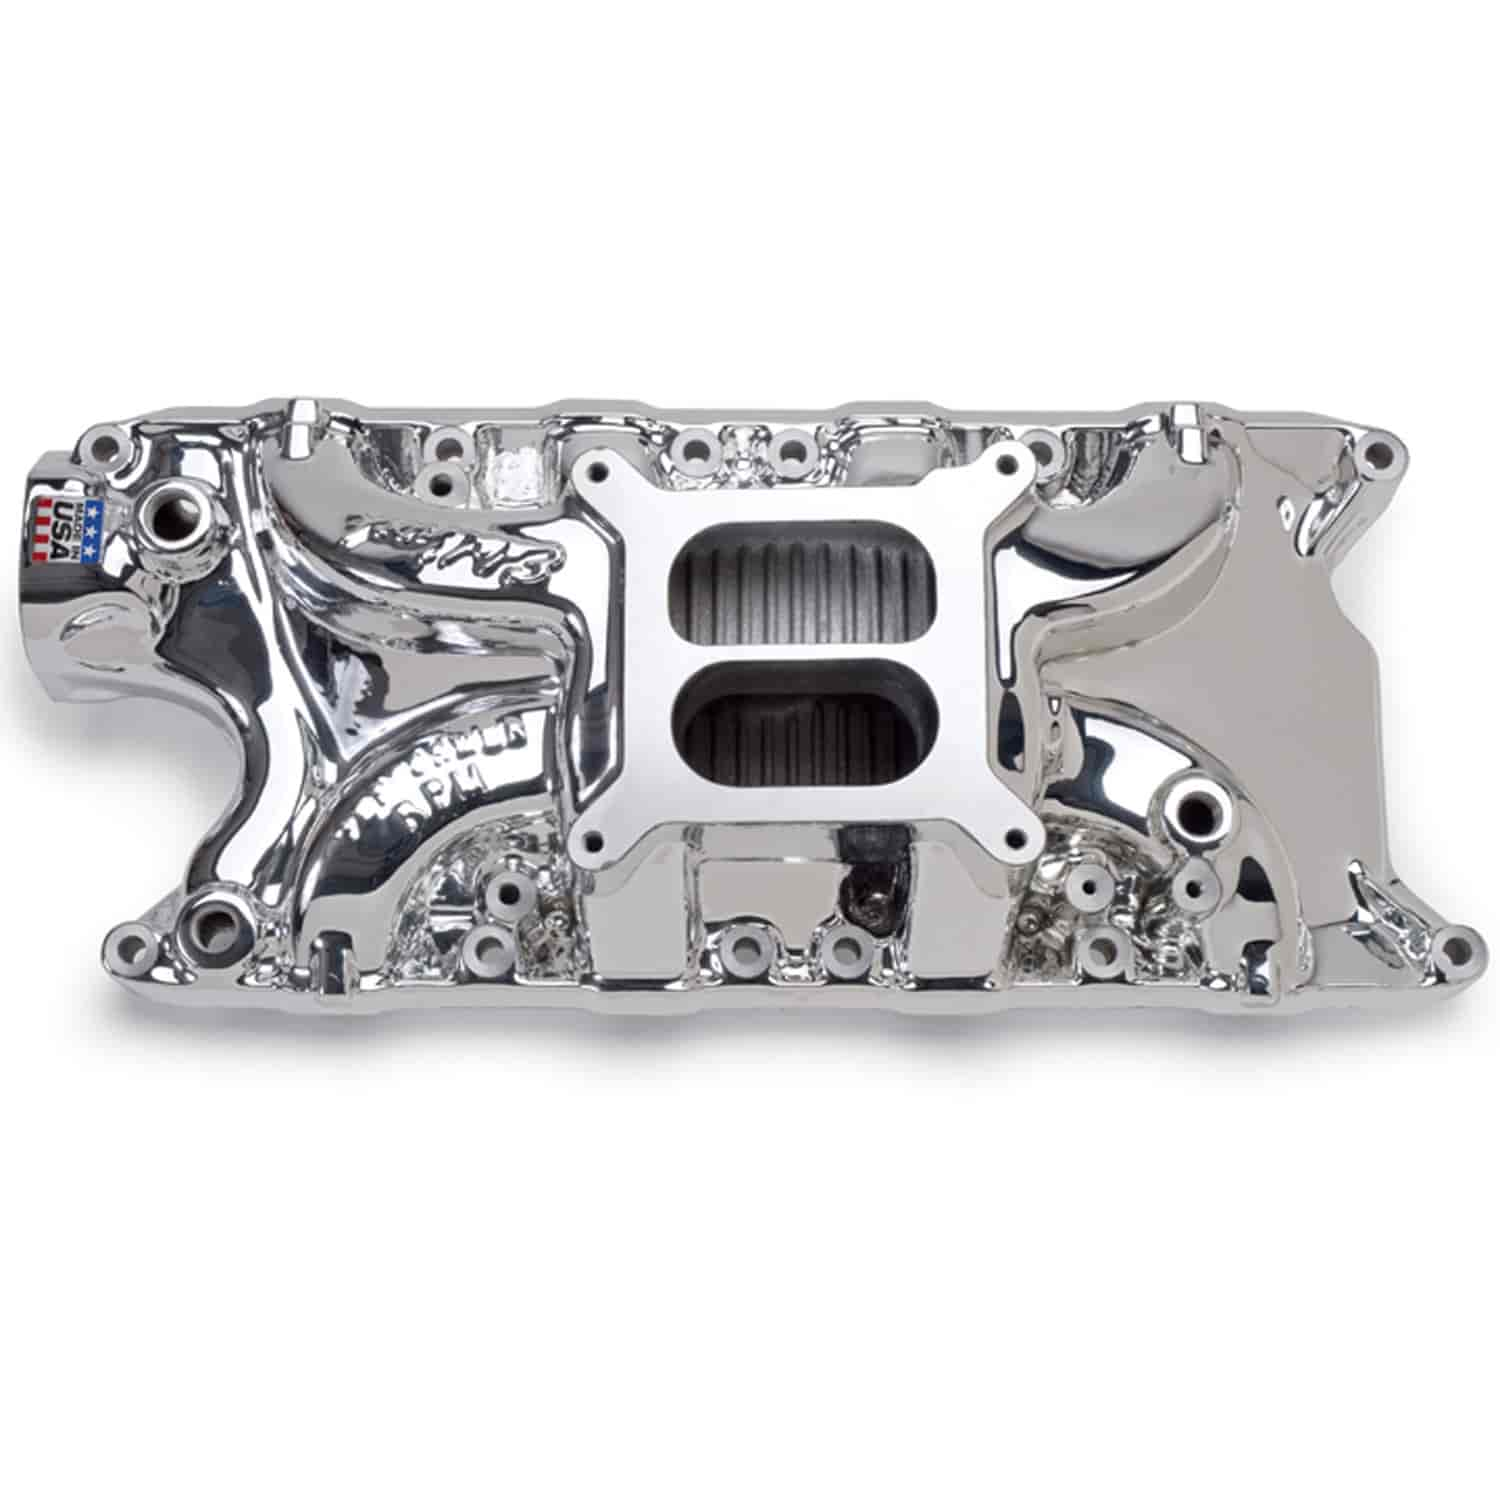 Edelbrock 71214 - Edelbrock Performer RPM Manifolds & Kits for Ford